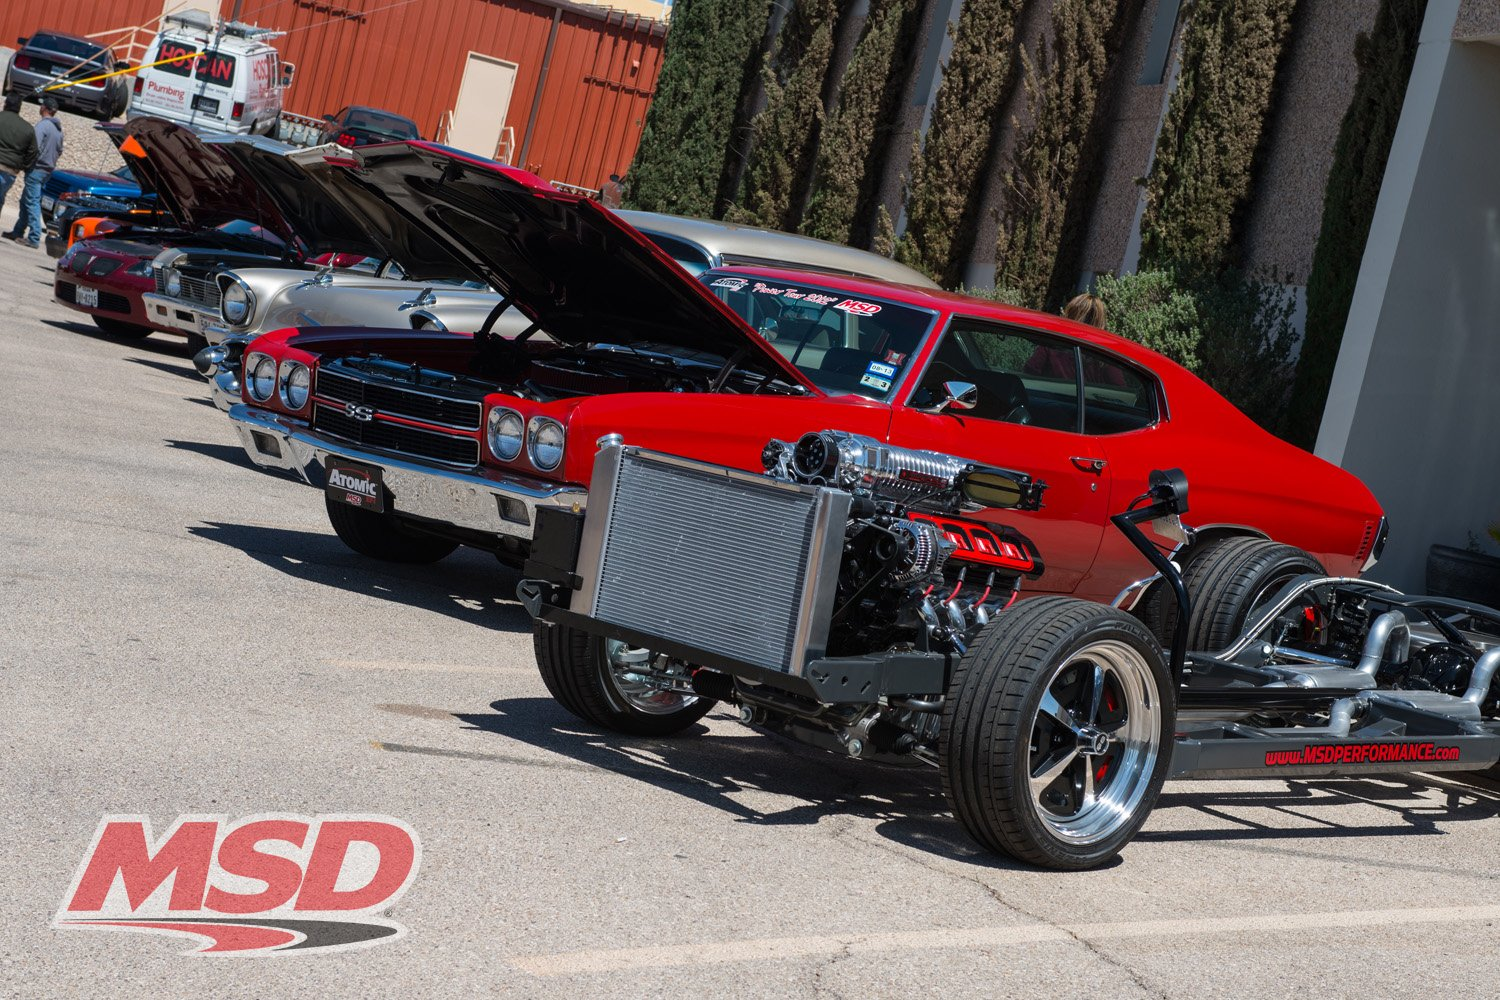 Car Show Blog Posts - Page 1